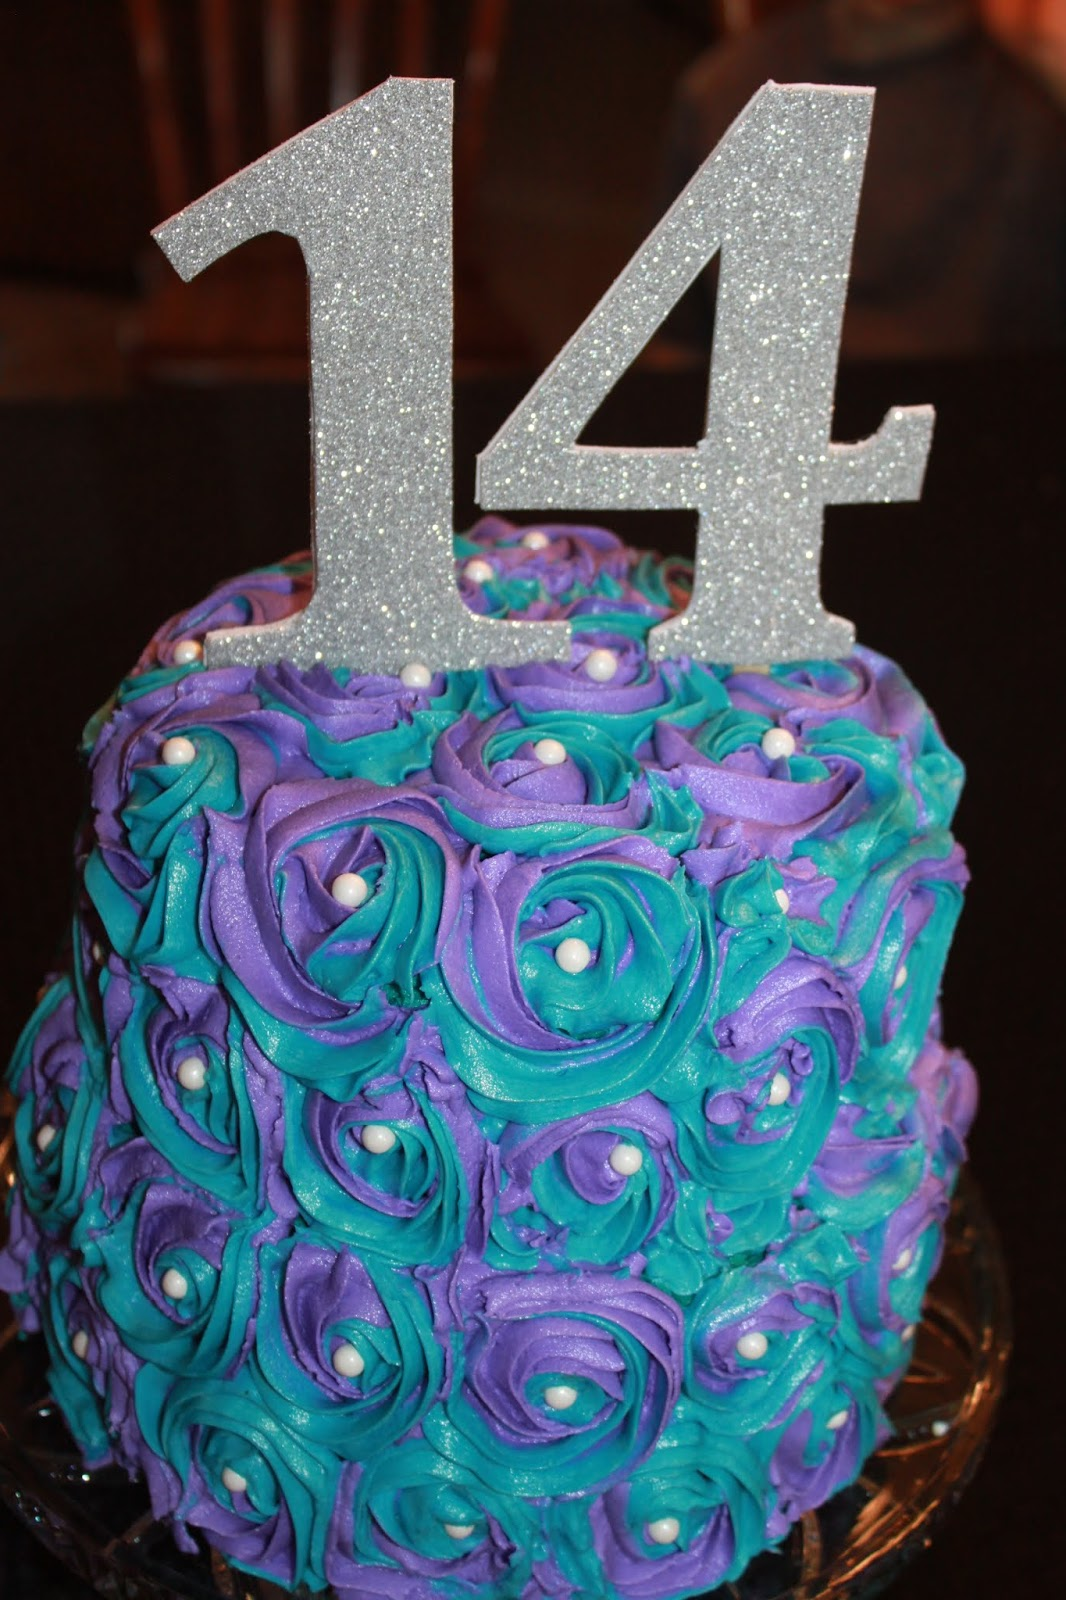 Astonishing These Are A Few Of My Favorite Things Girls 14Th Birthday Cake Ideas Personalised Birthday Cards Veneteletsinfo